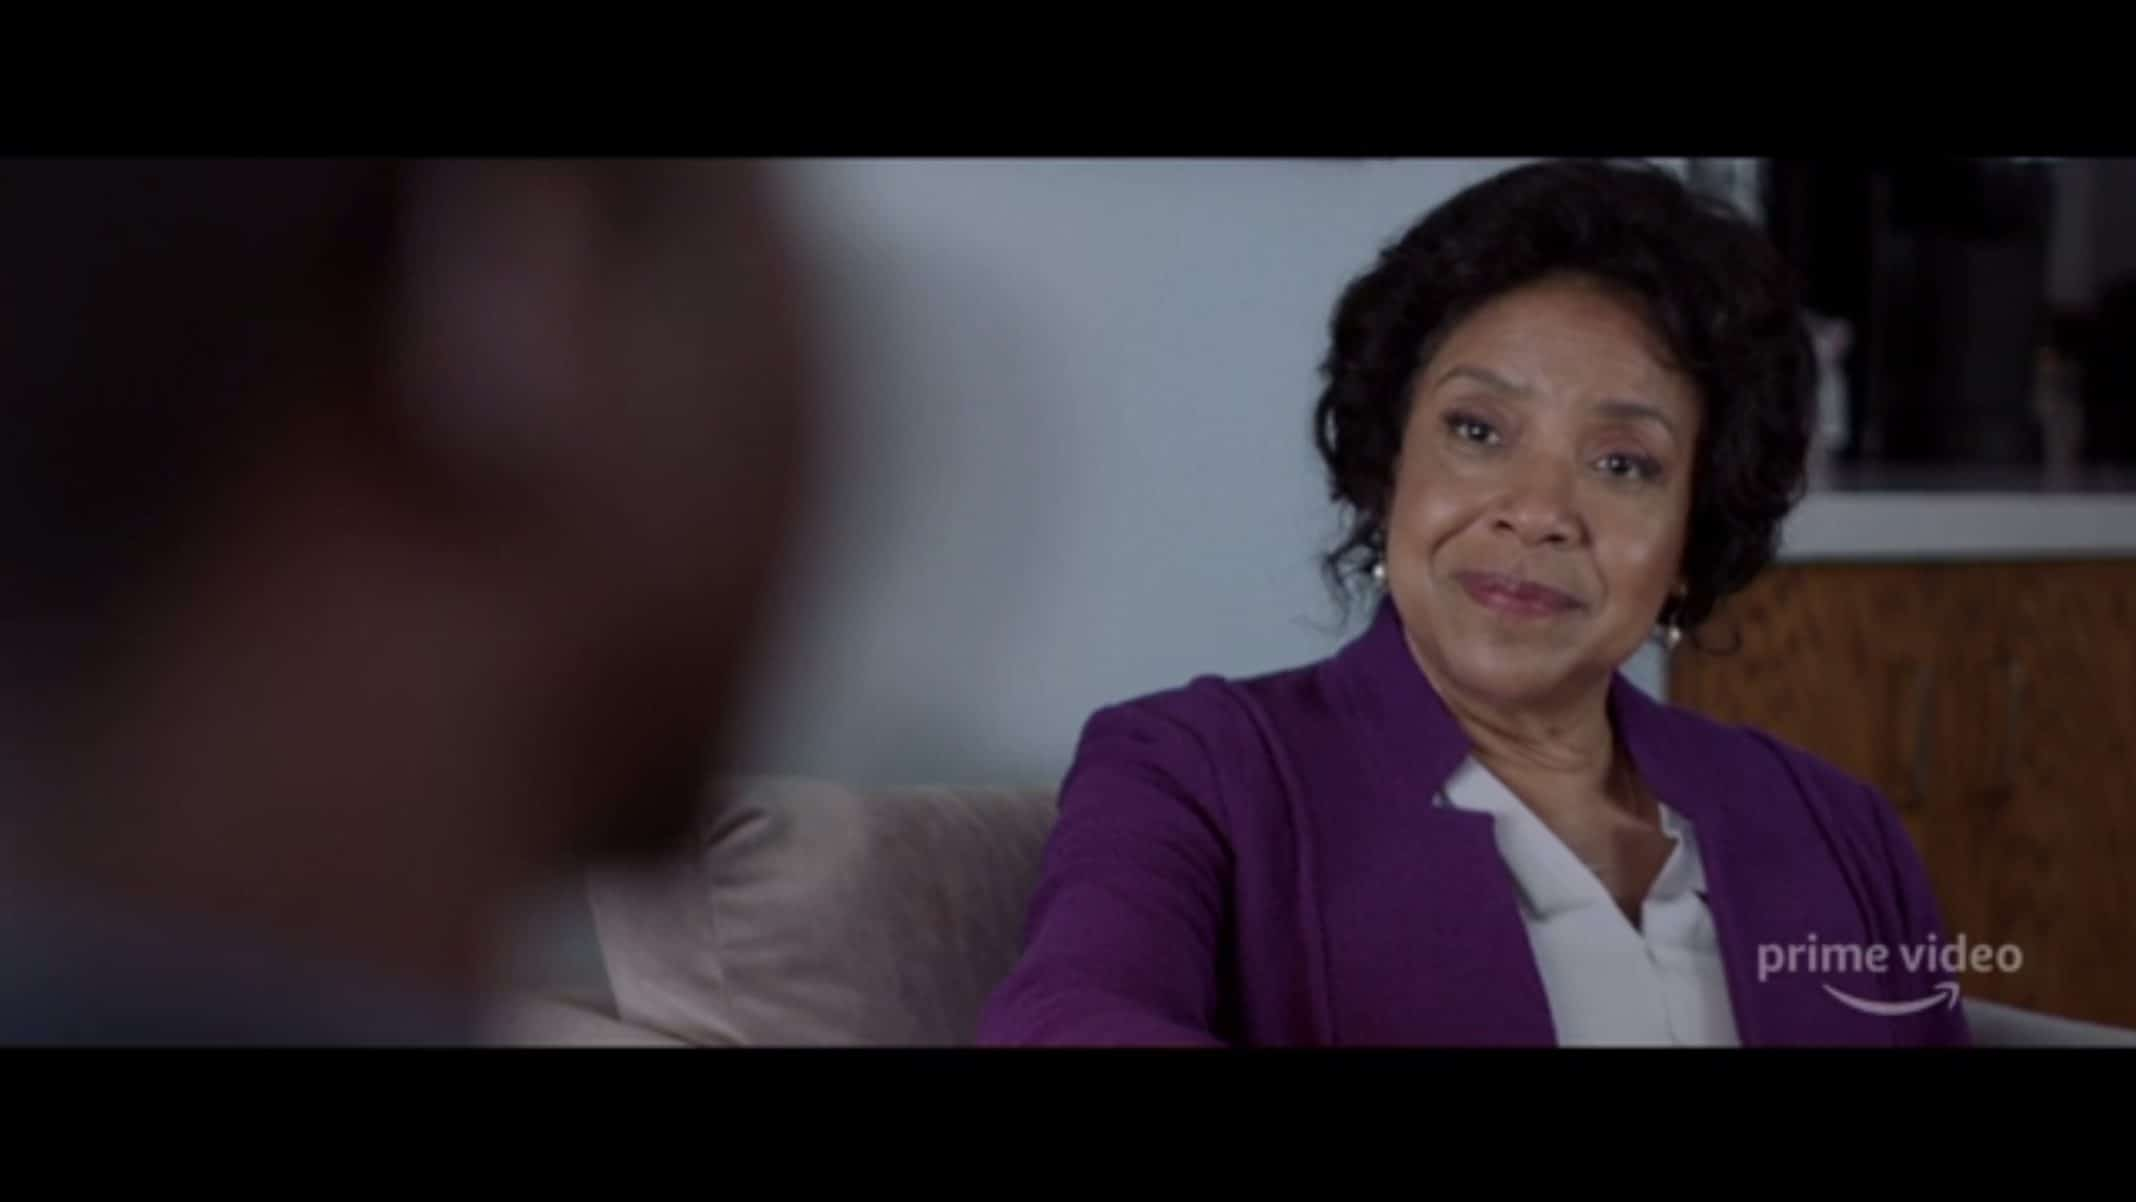 Dr. Lillian Brooks (Phylicia Rashad) during her consultation with Nolan.